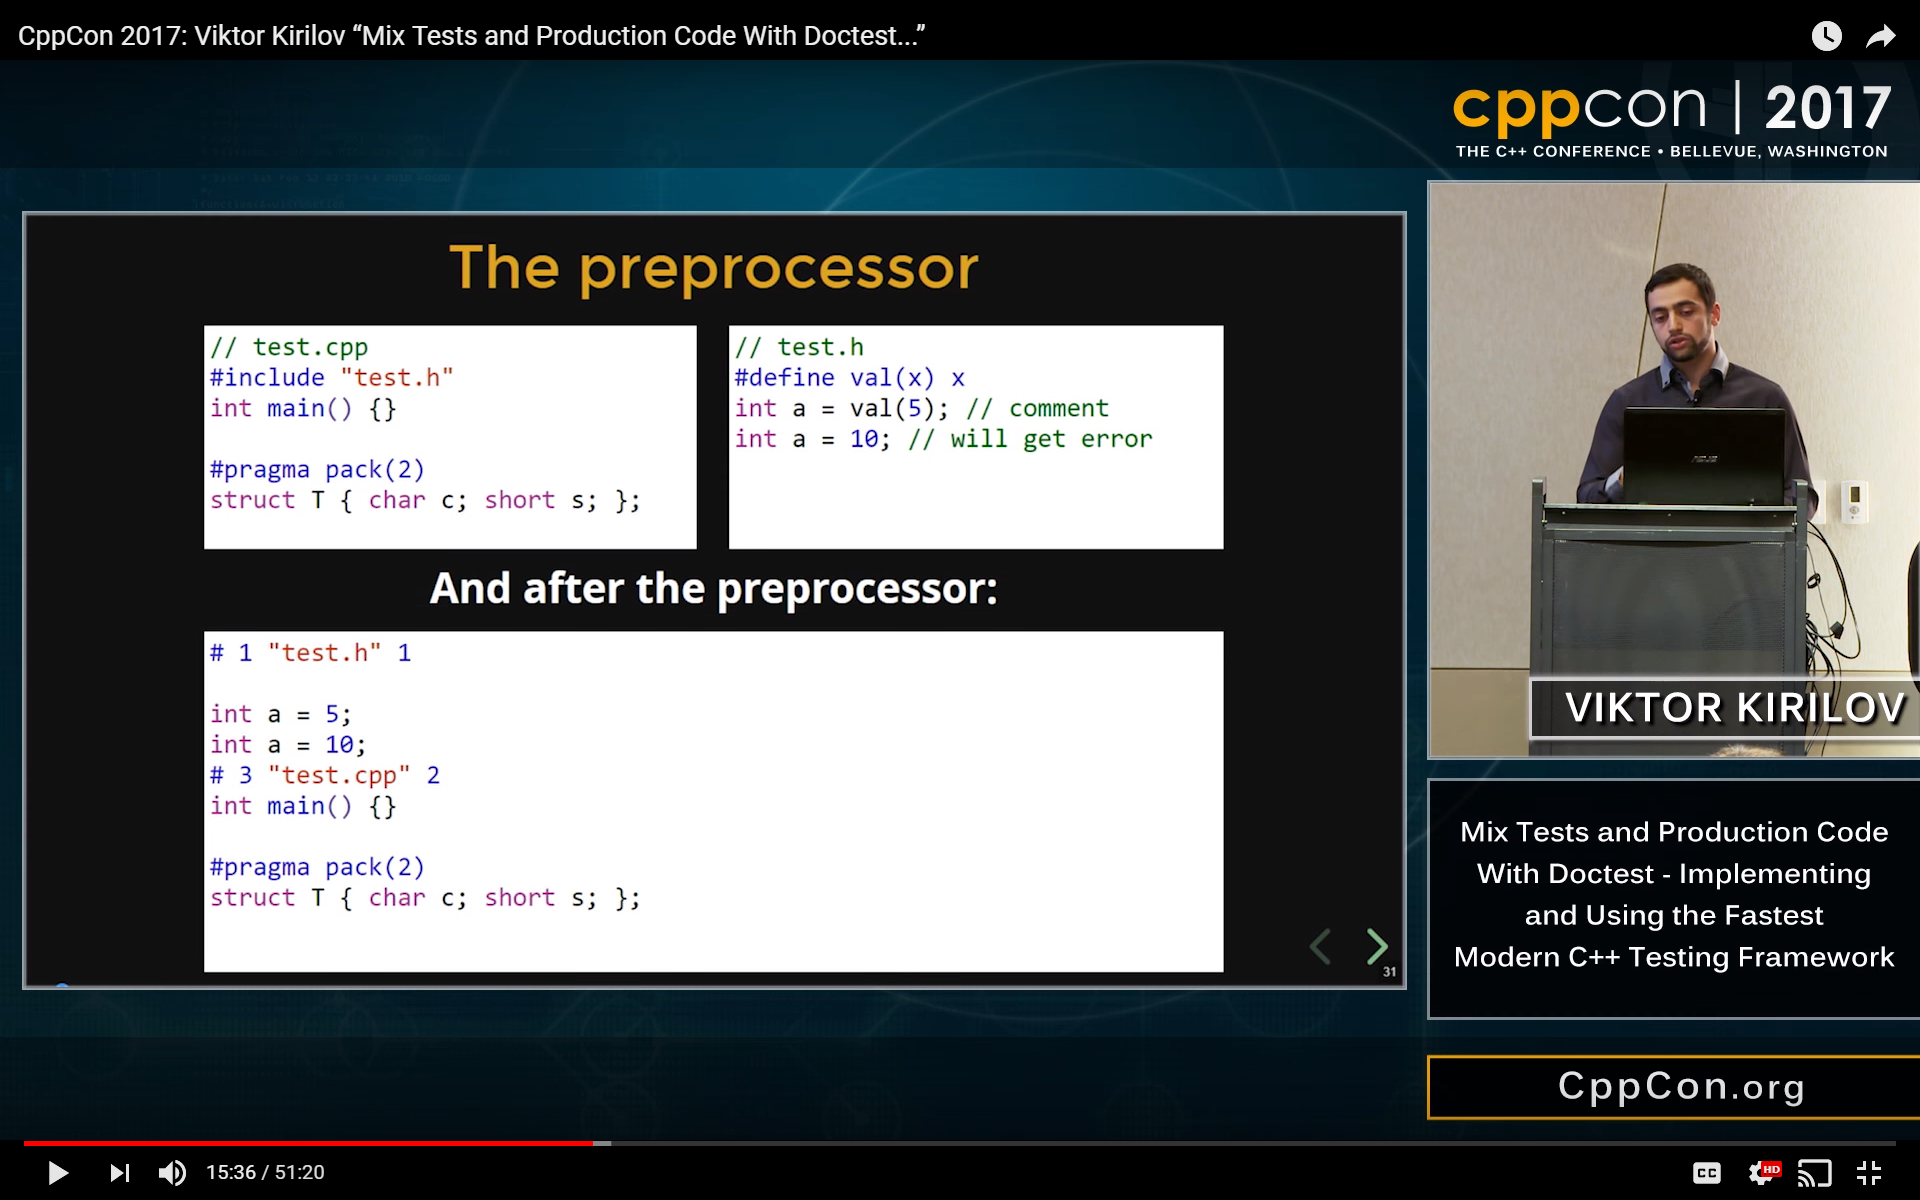 CppCon 2017 talk about doctest on youtube